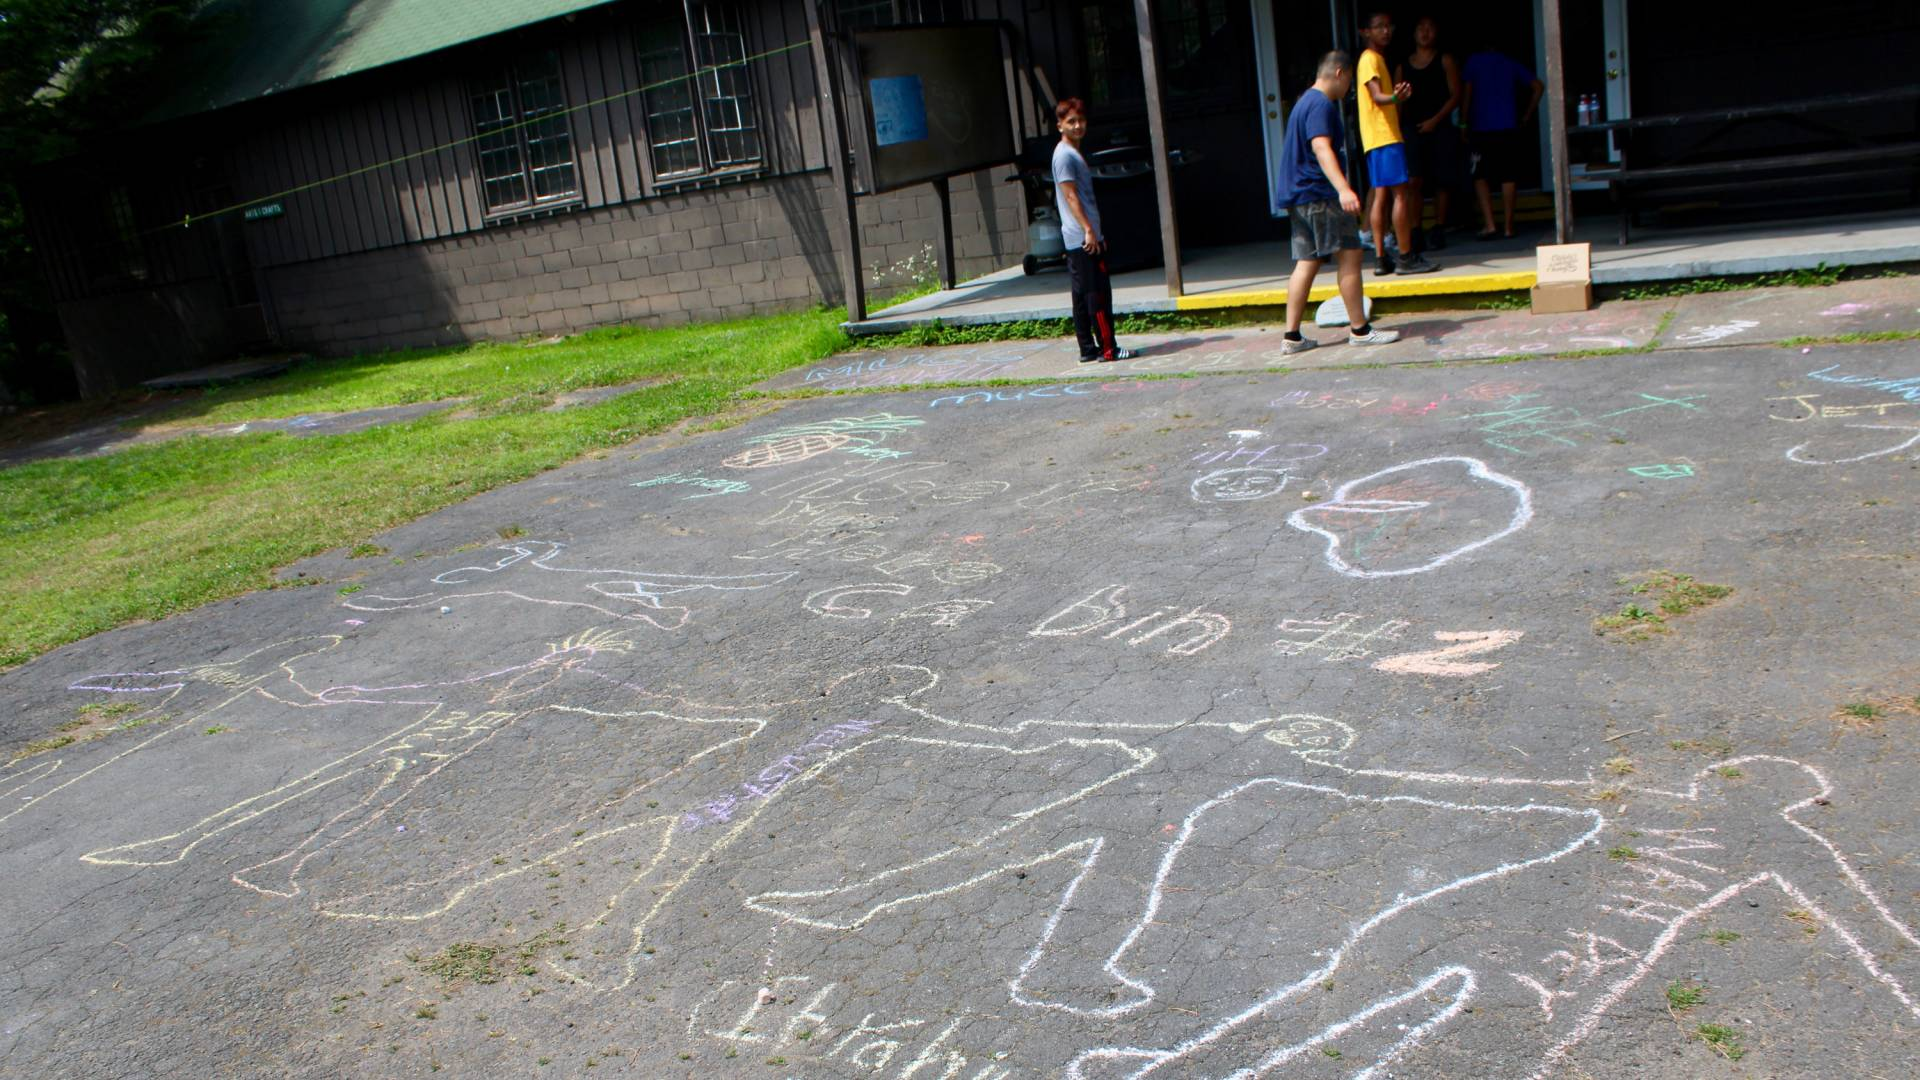 Chalk figures drawn on the ground